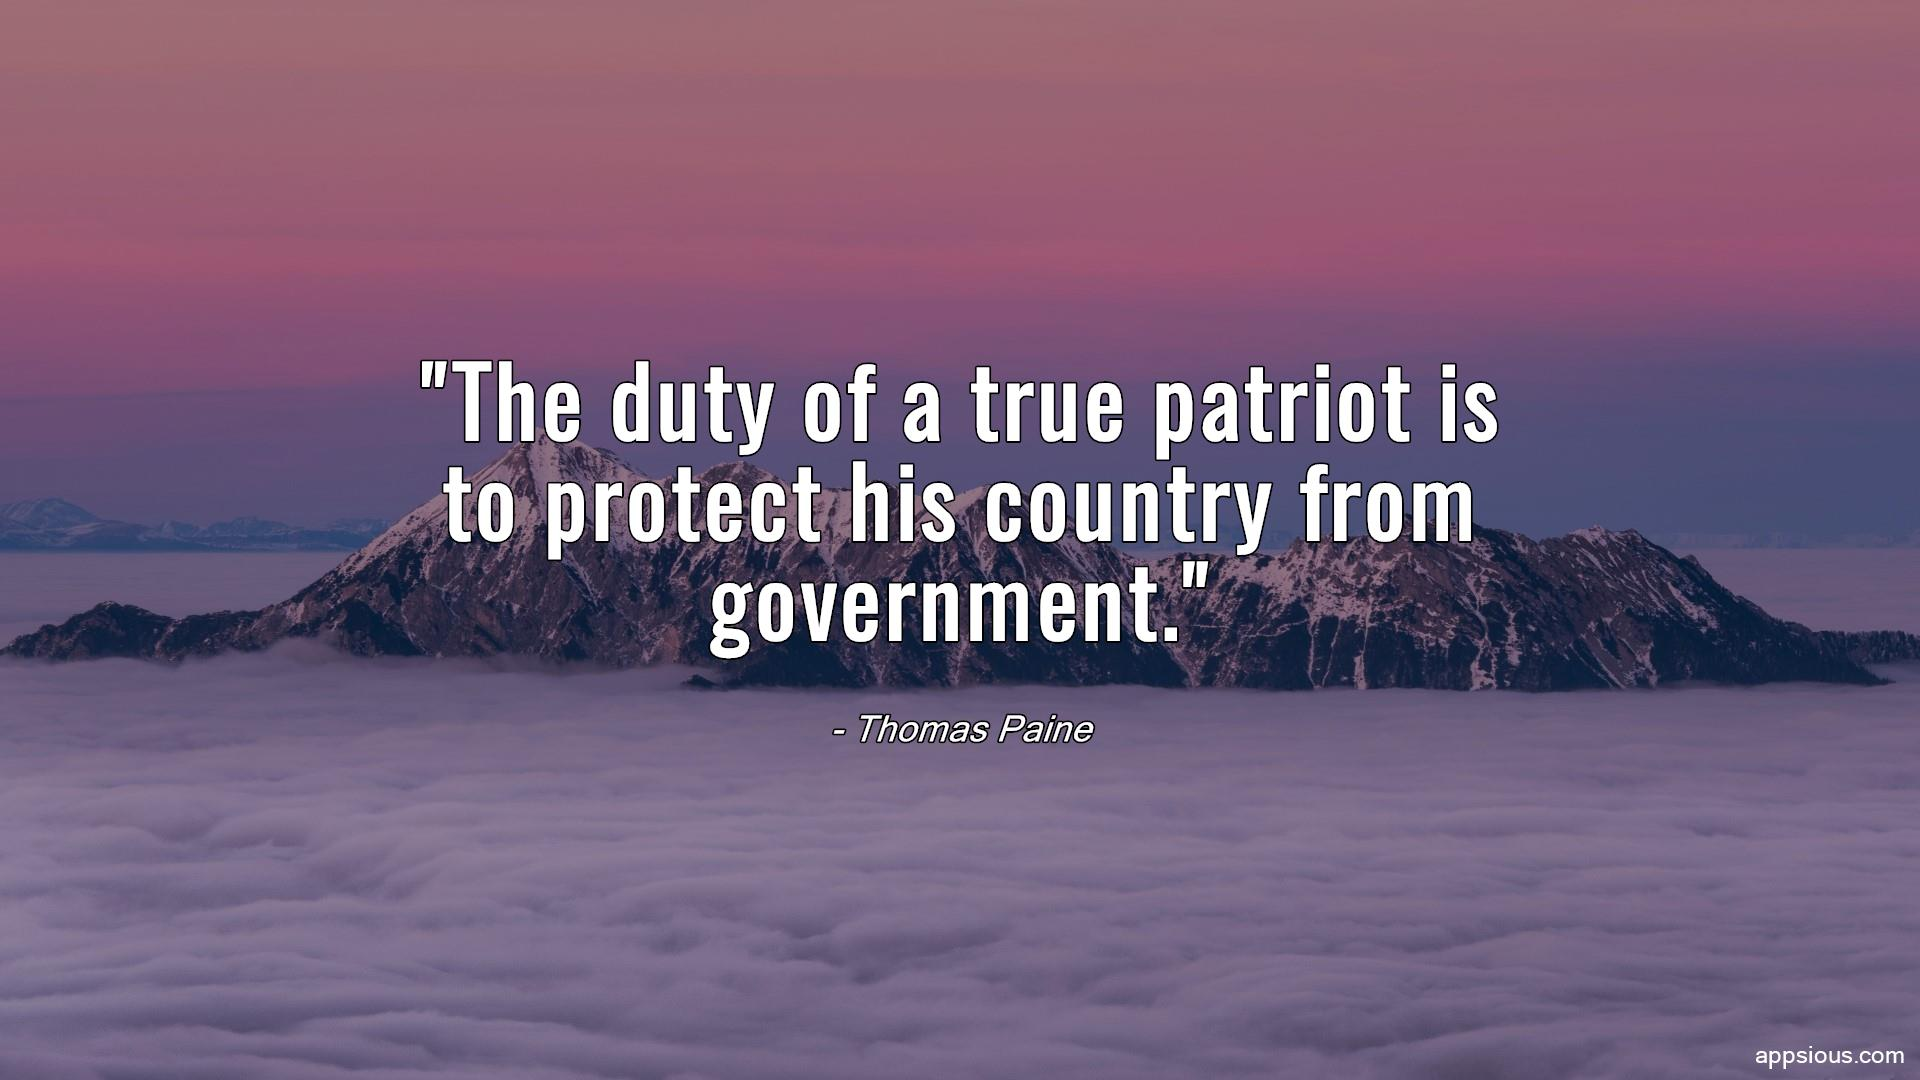 The duty of a true patriot is to protect his country from government.